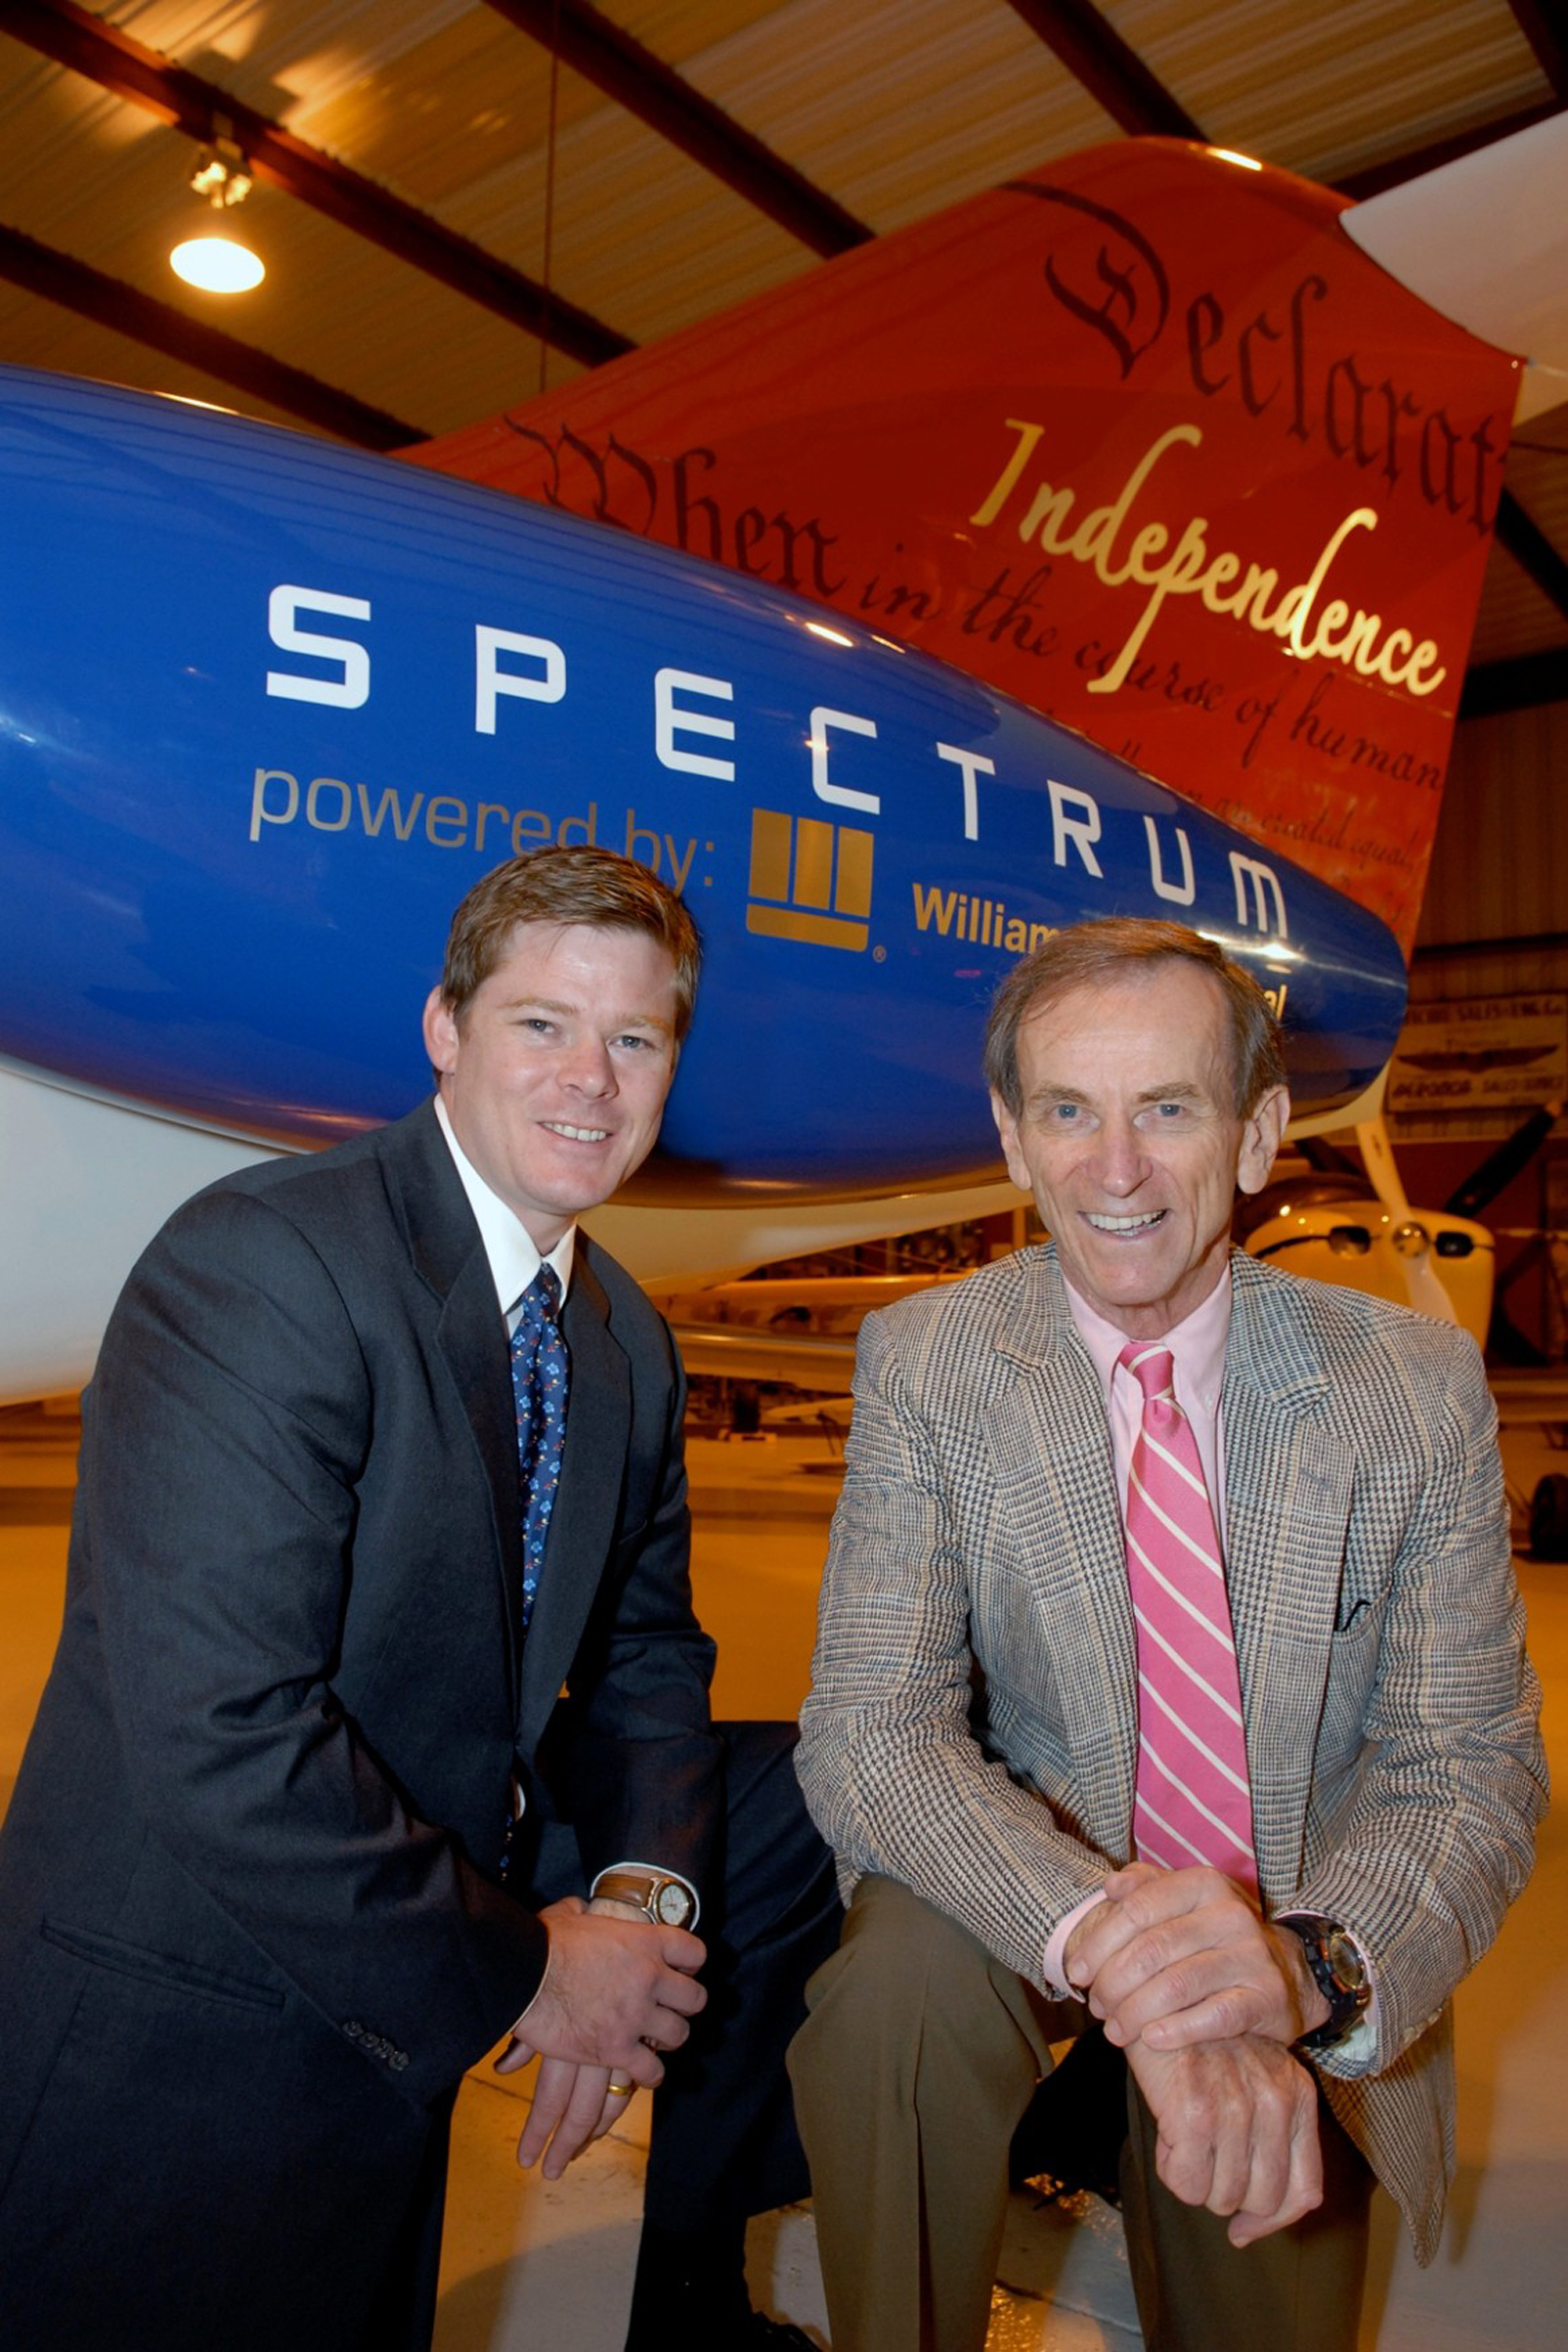 Jetpool Orders Fleet of Very Light Jets from Spectrum Aeronautical